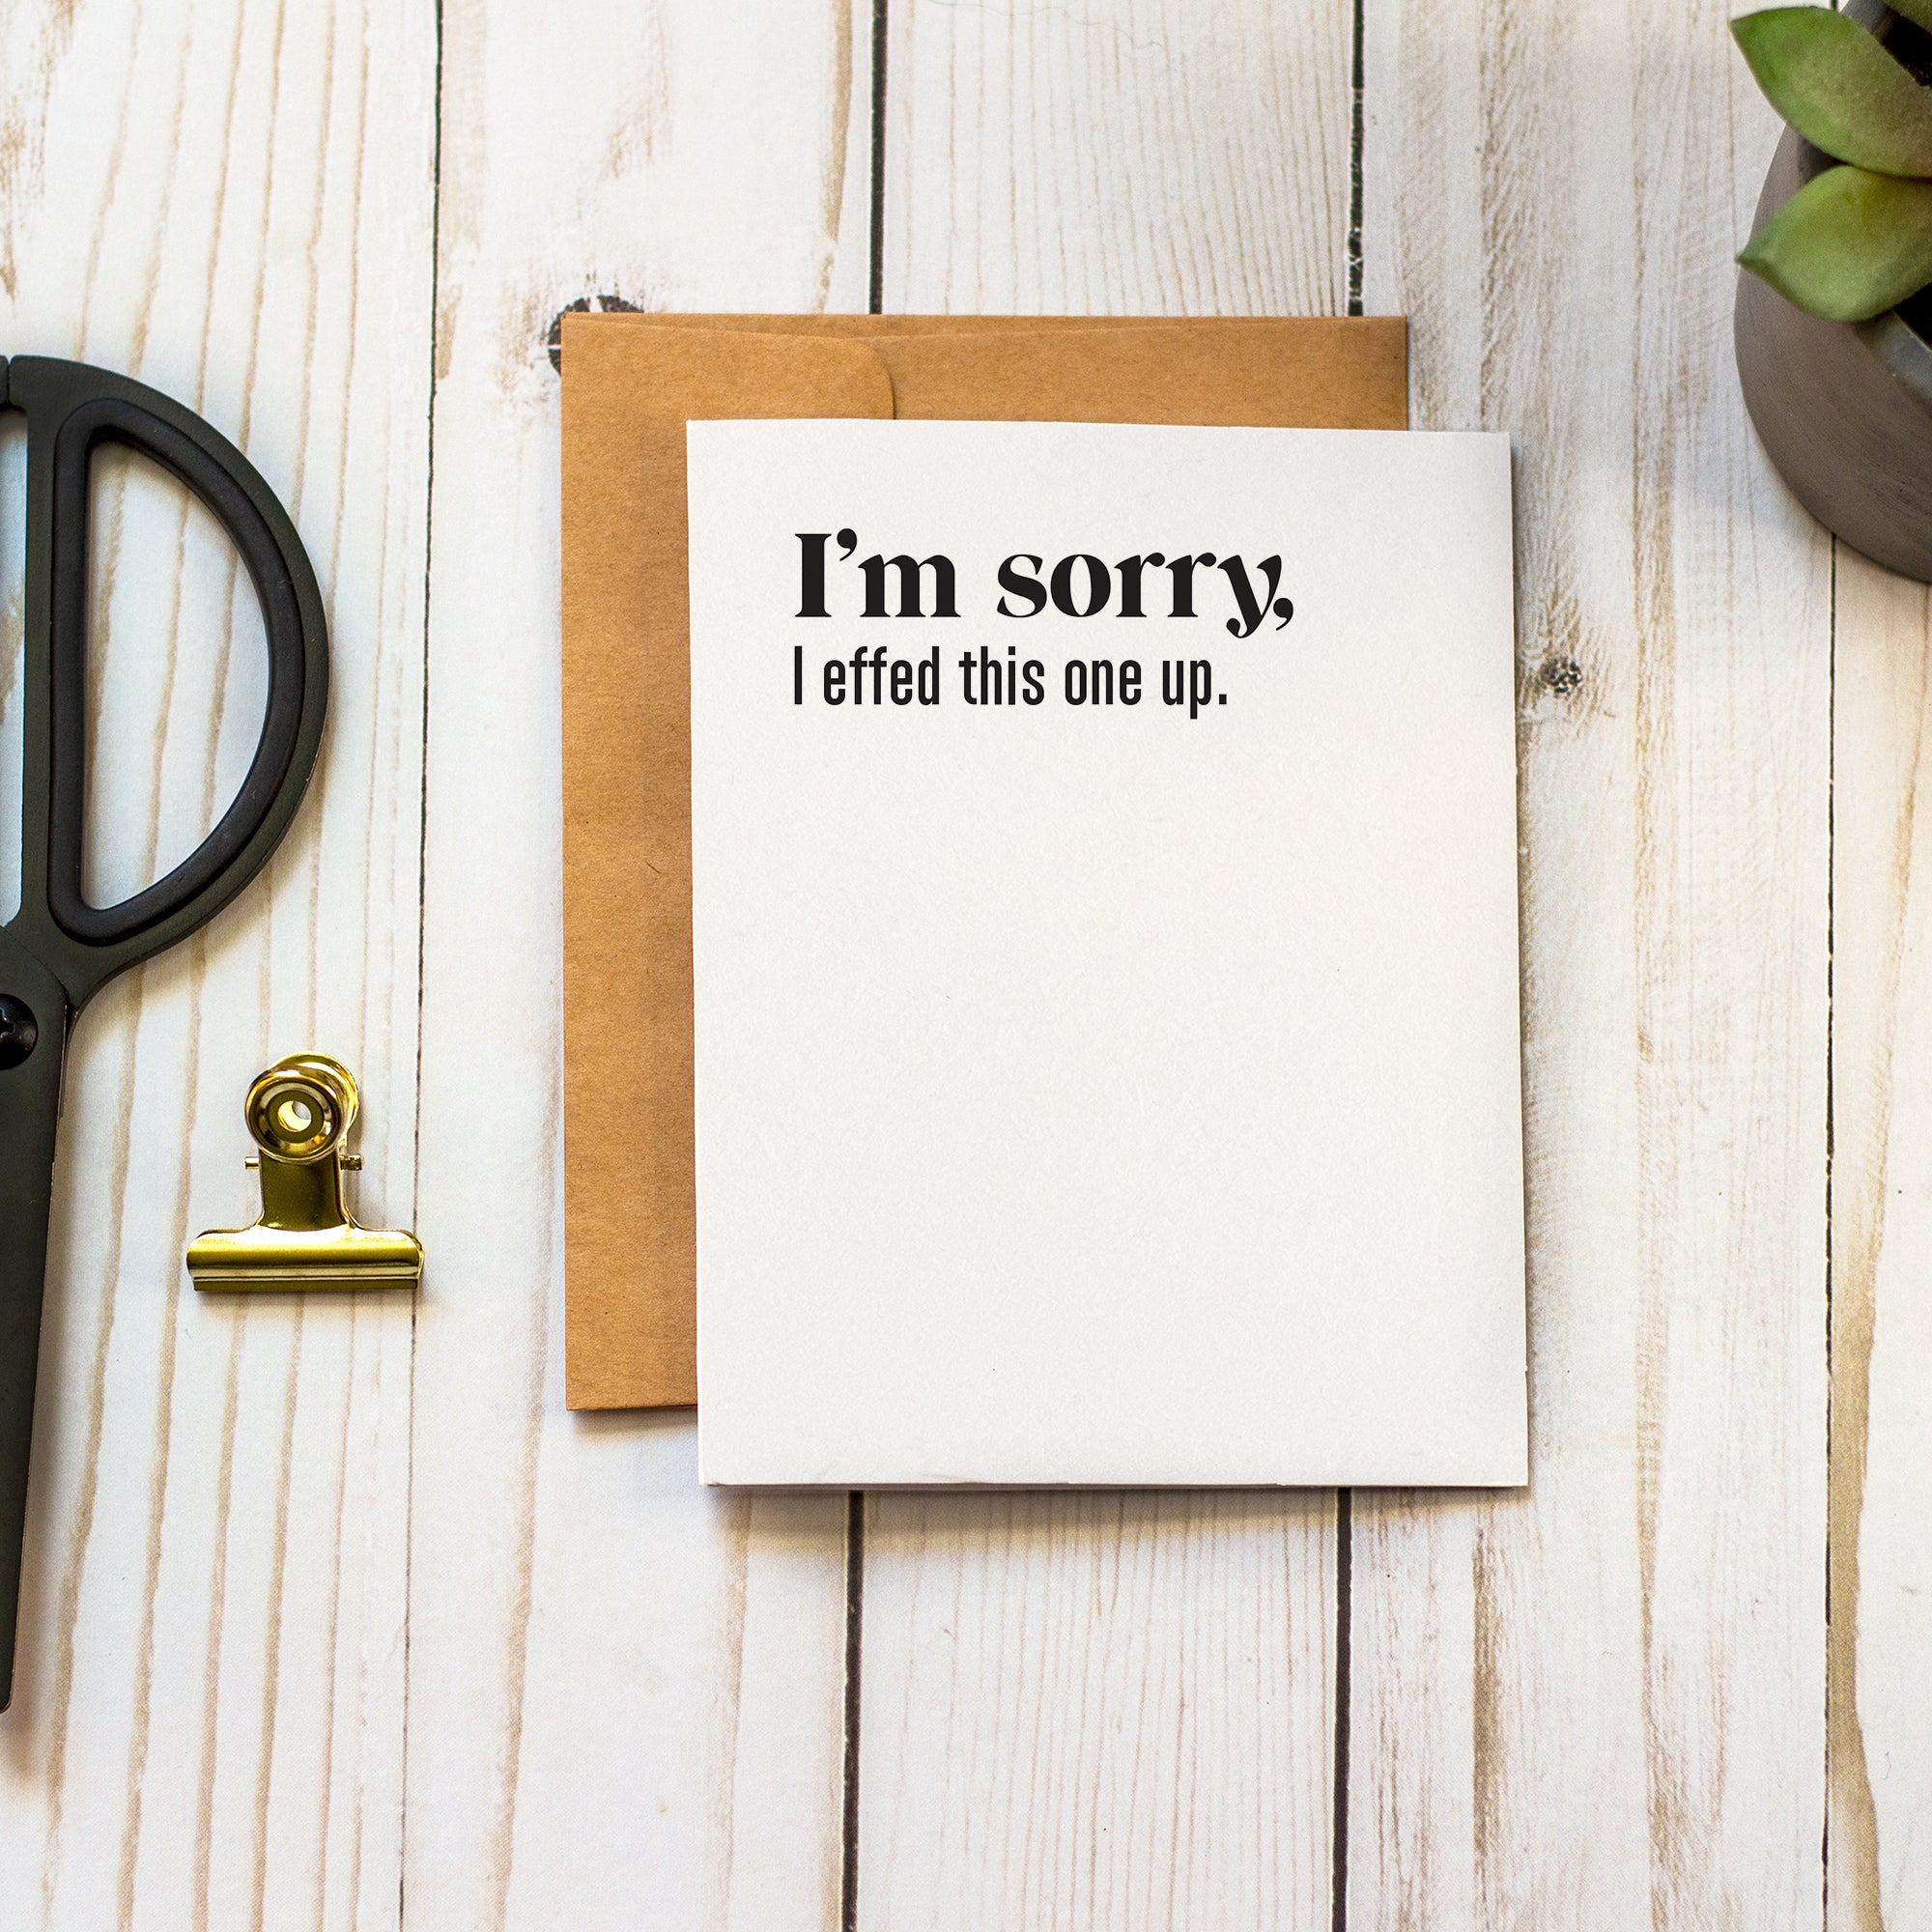 I'm Sorry I Effed This One Up - Sympathy Greeting Card